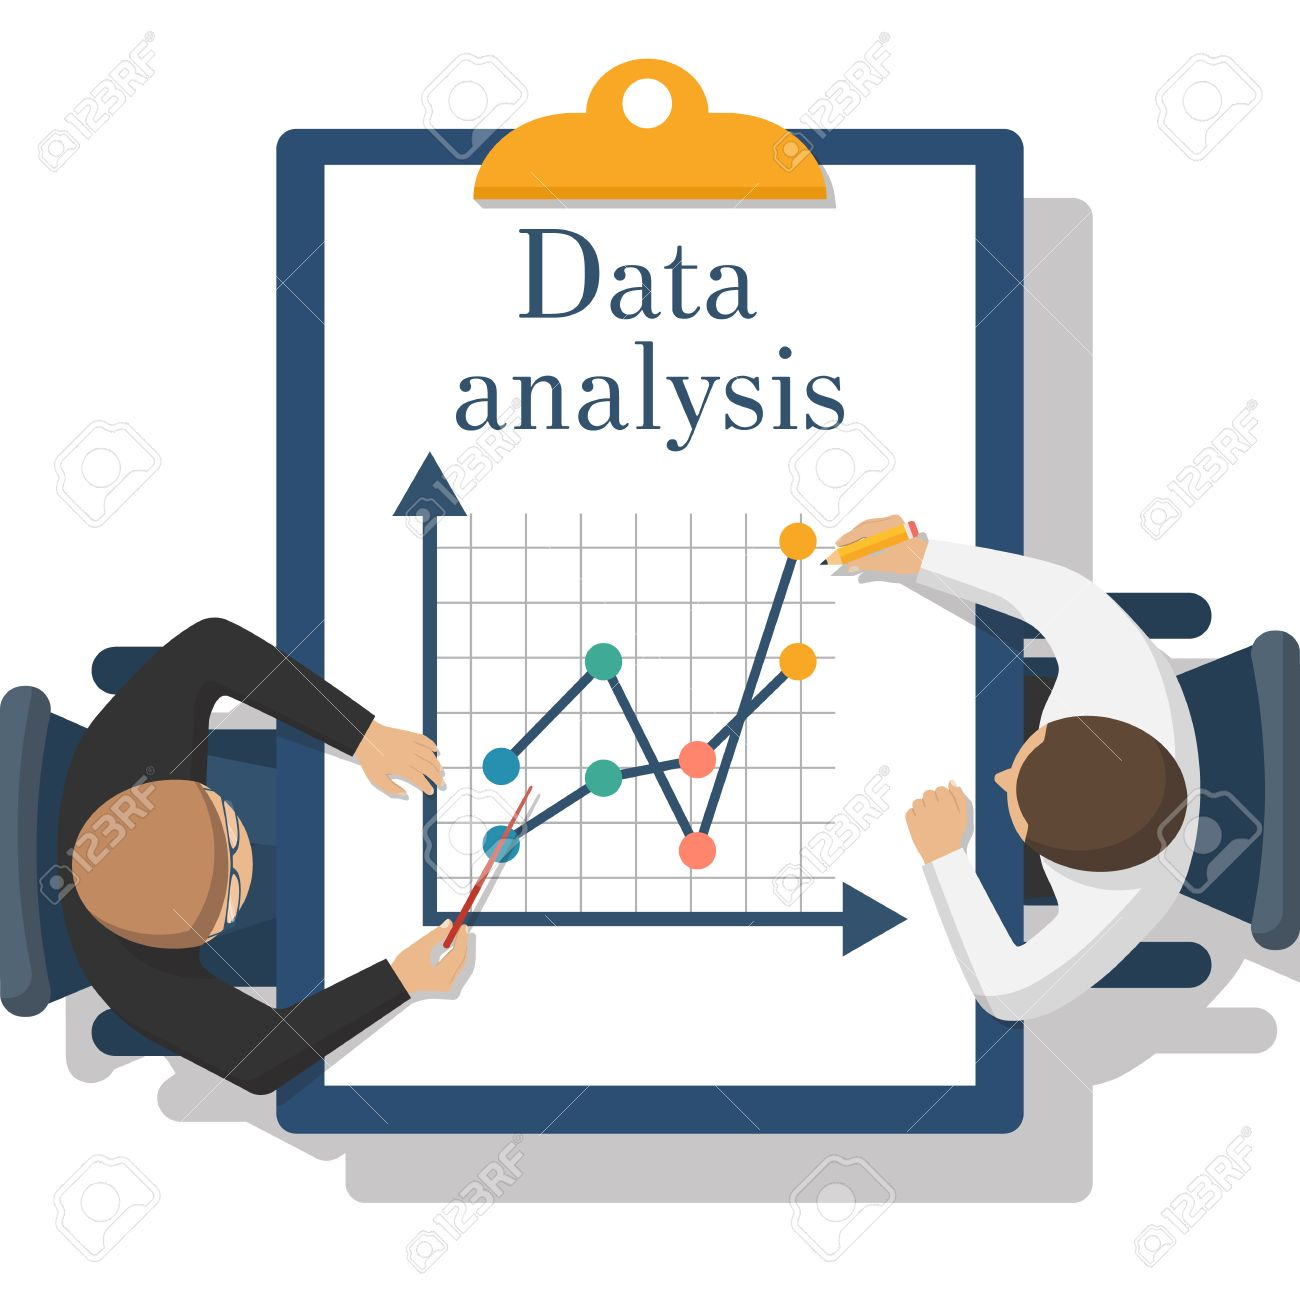 Report clipart data analyst. Analyze cliparts free download